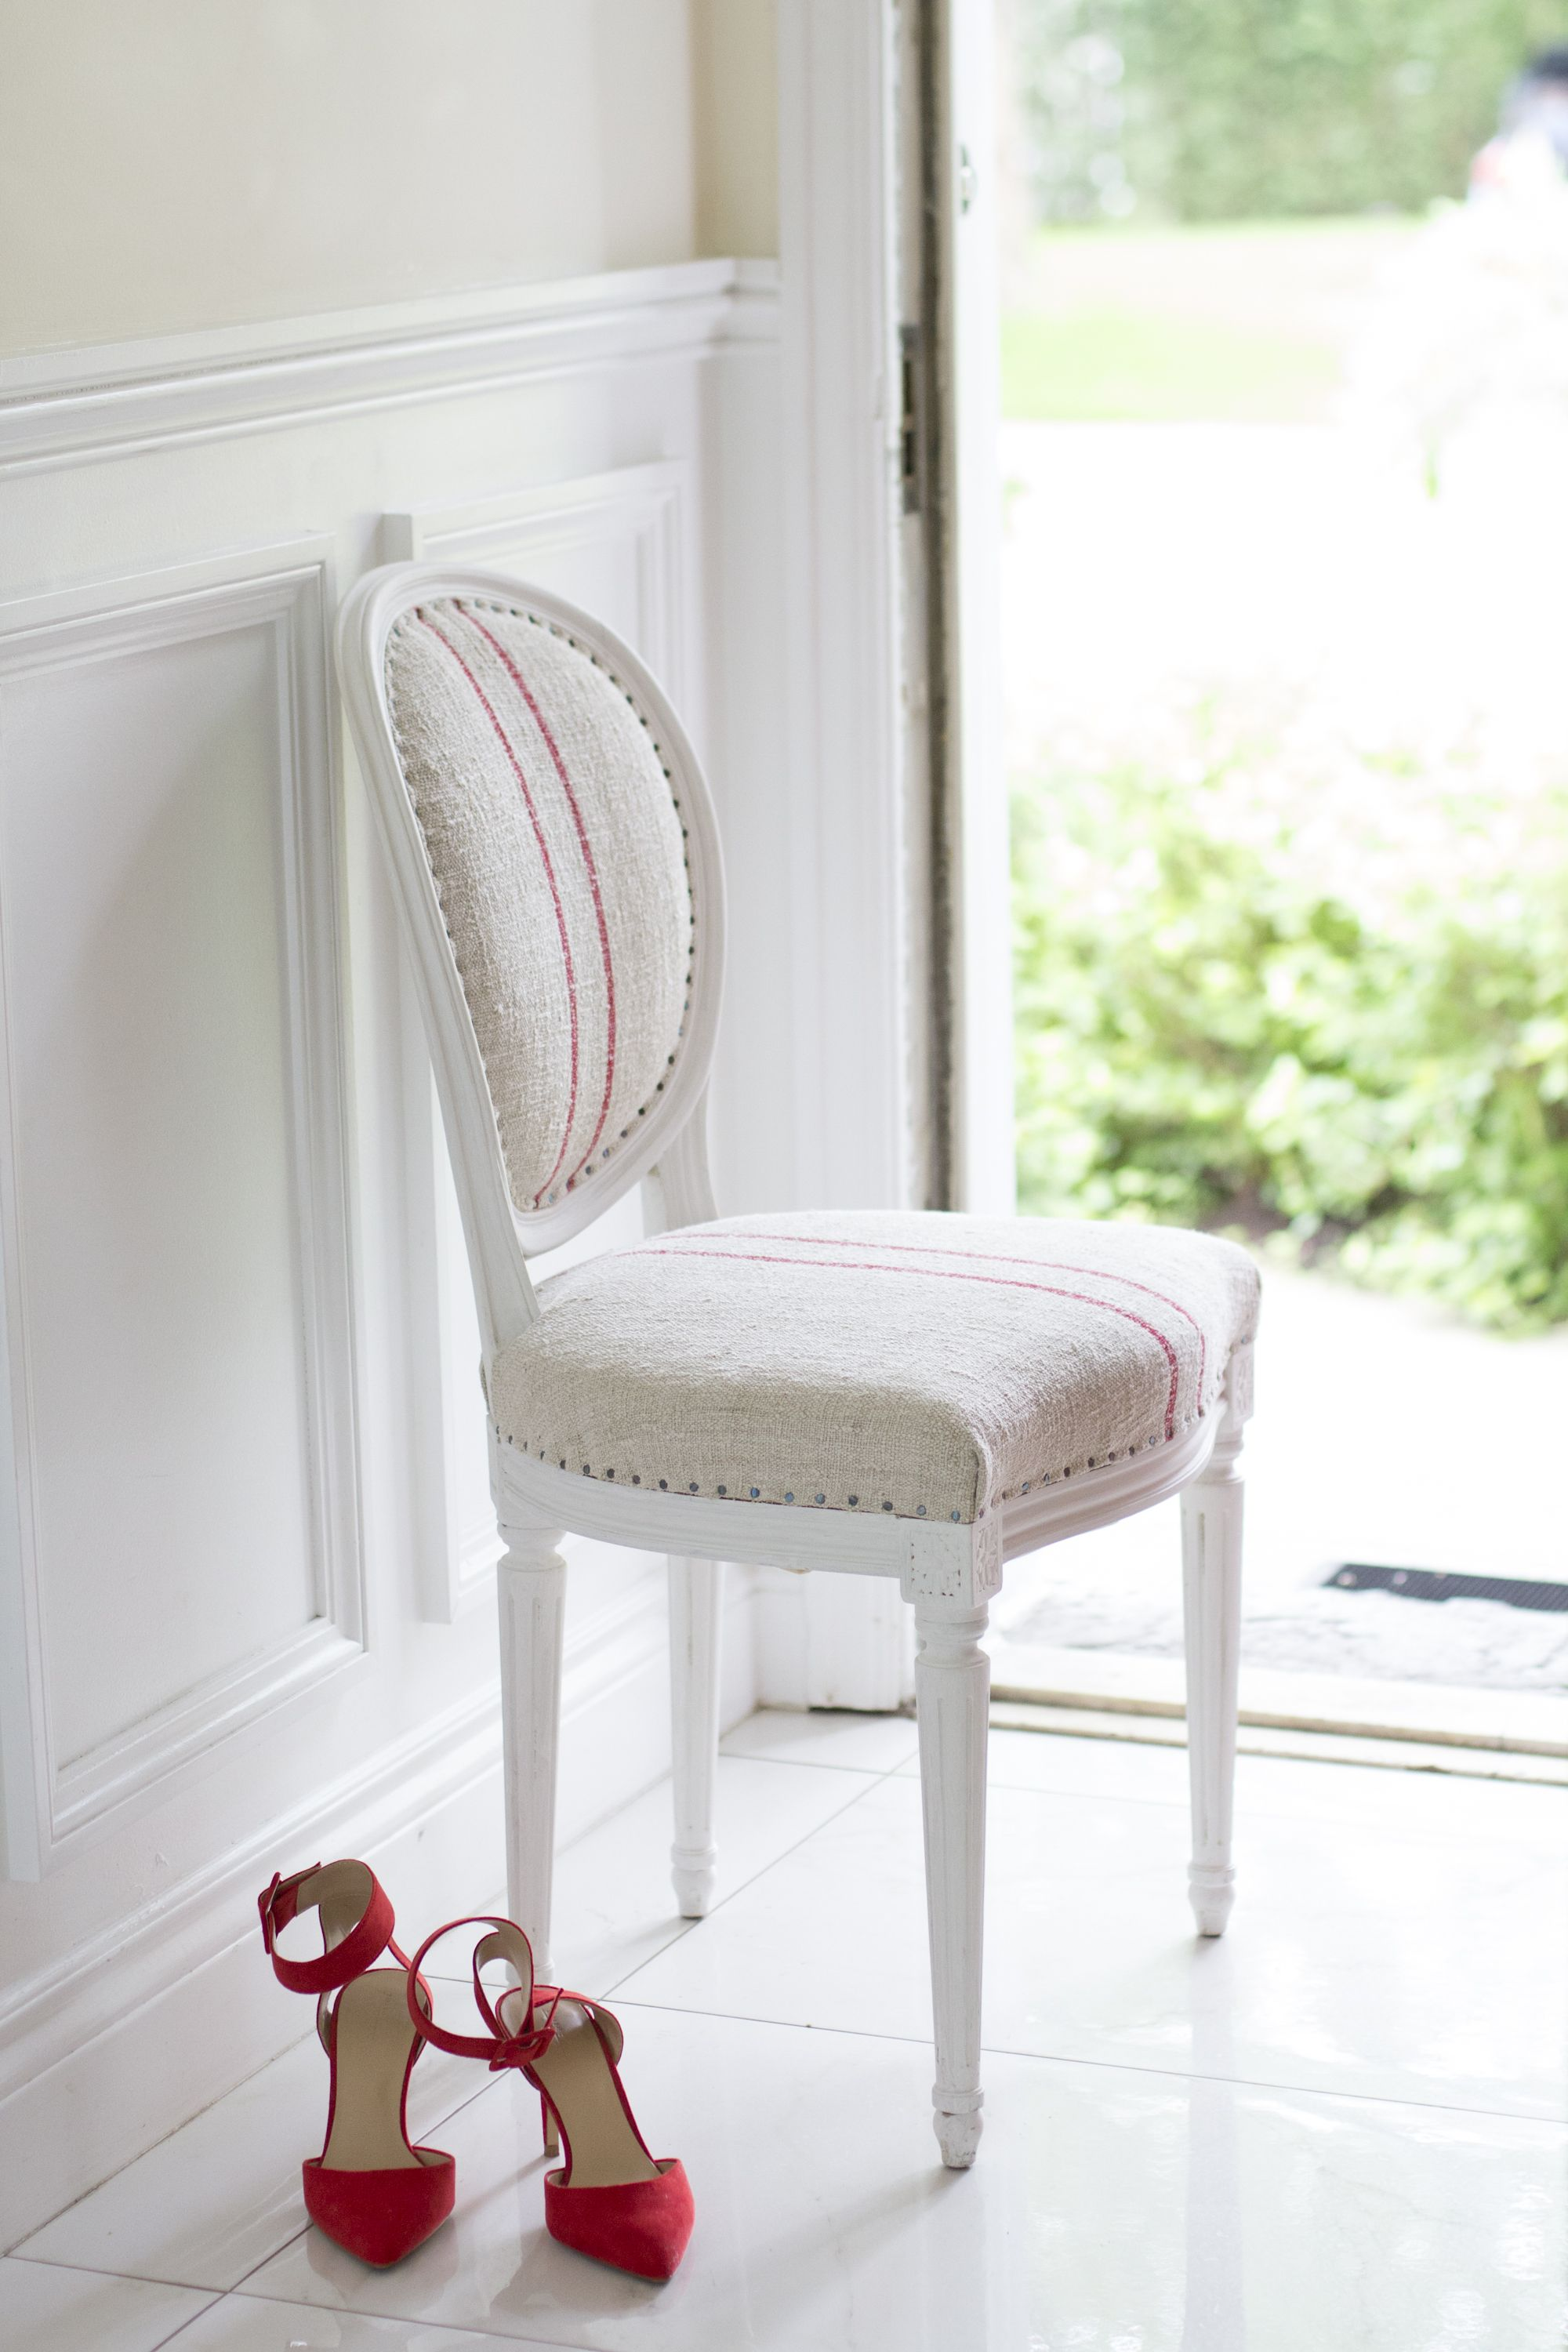 Red Heel Chair Old Fashioned Birthing Chairs Heels The Shoes Pinterest Ana Rosa And